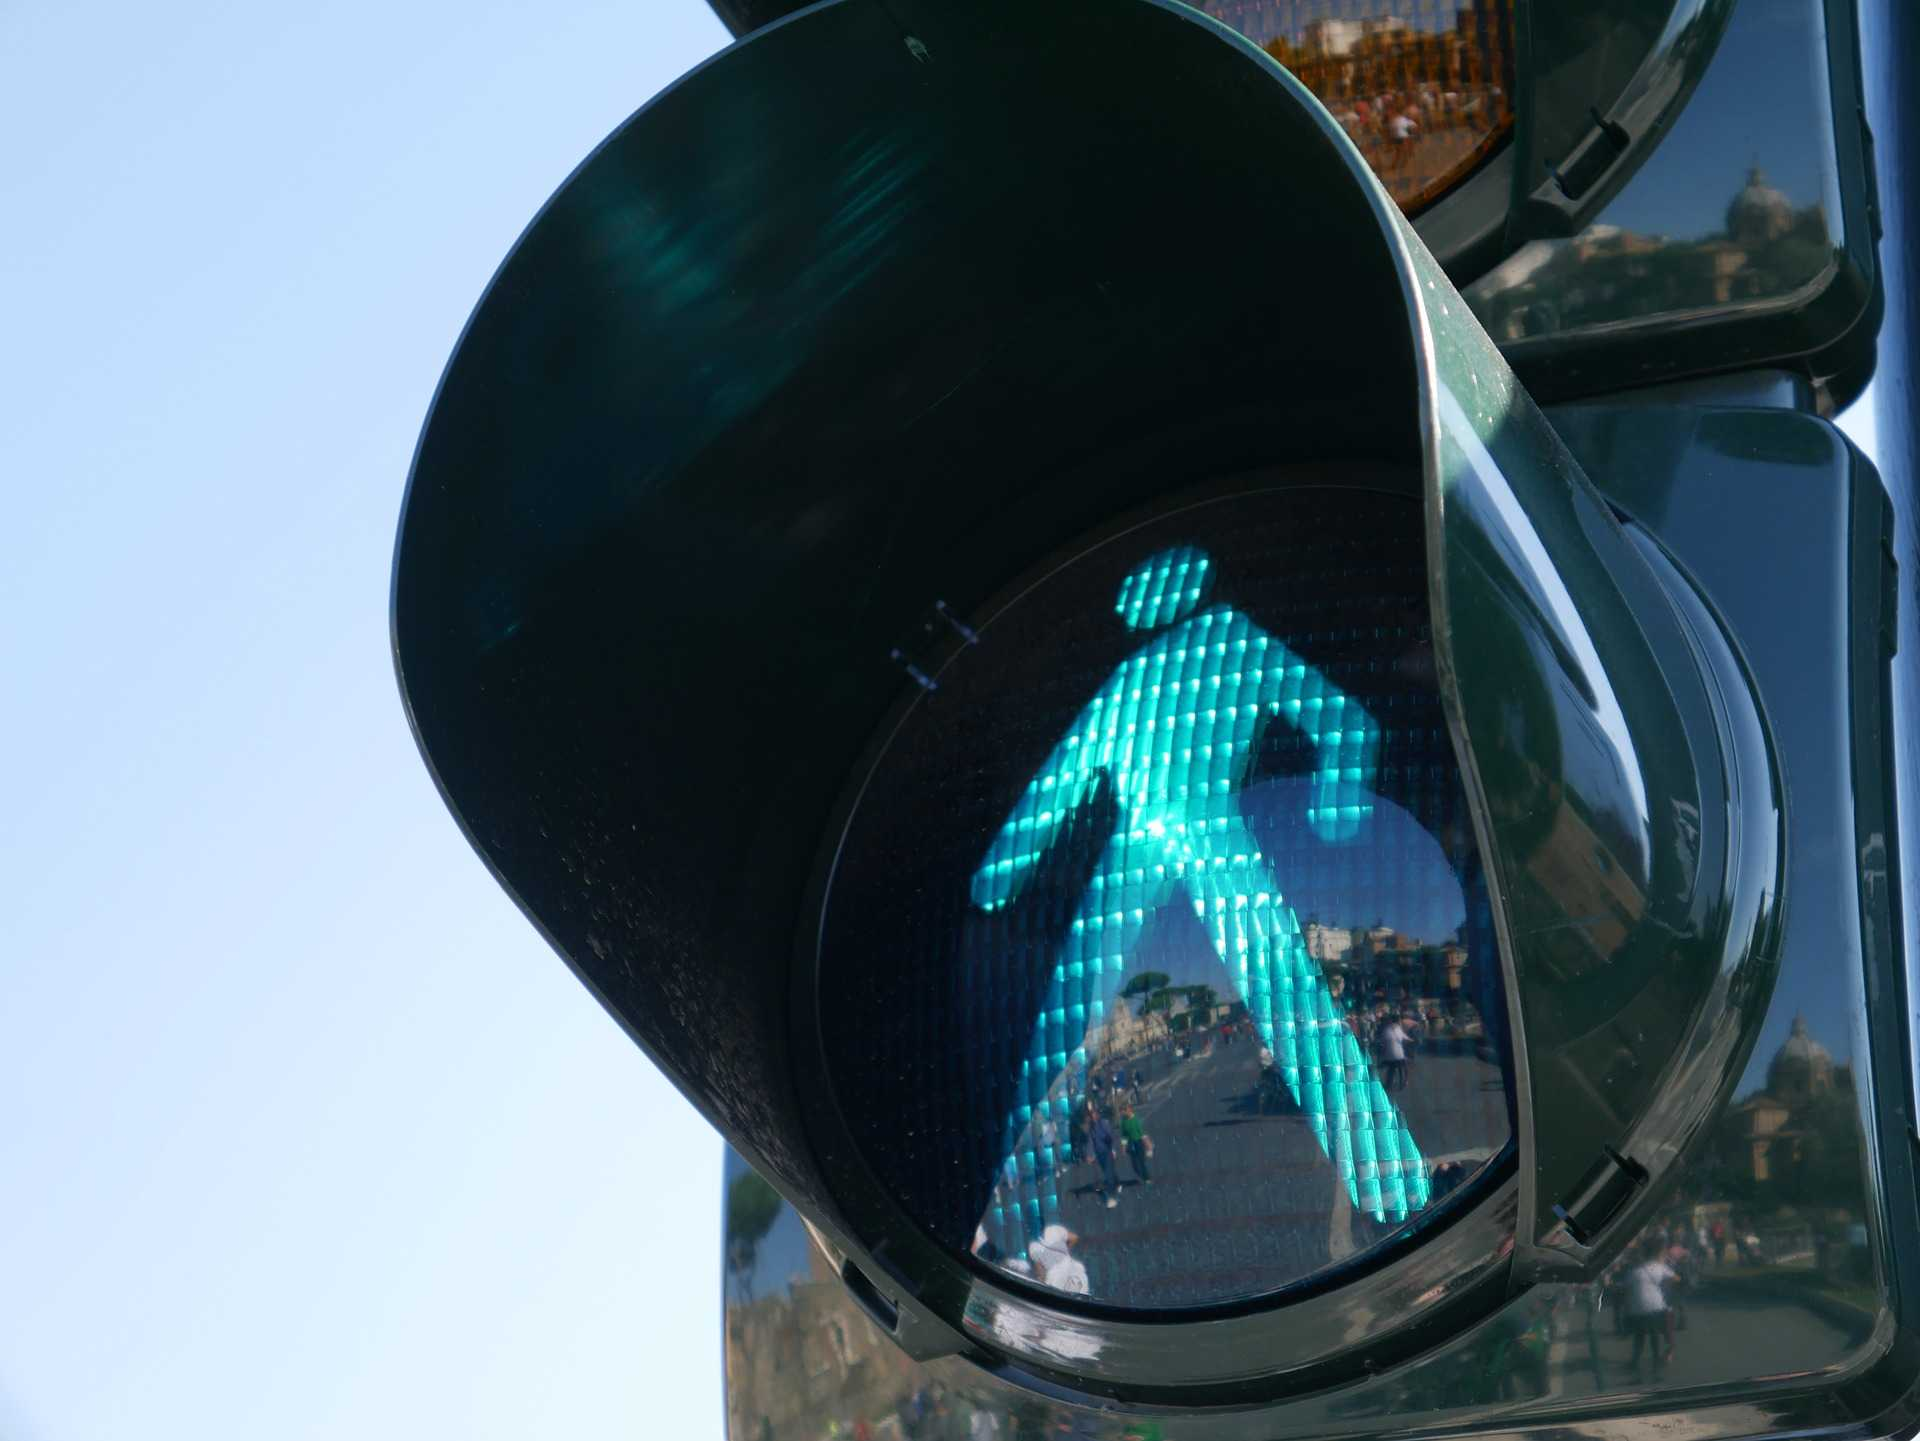 Green man at the pedestrian crossing